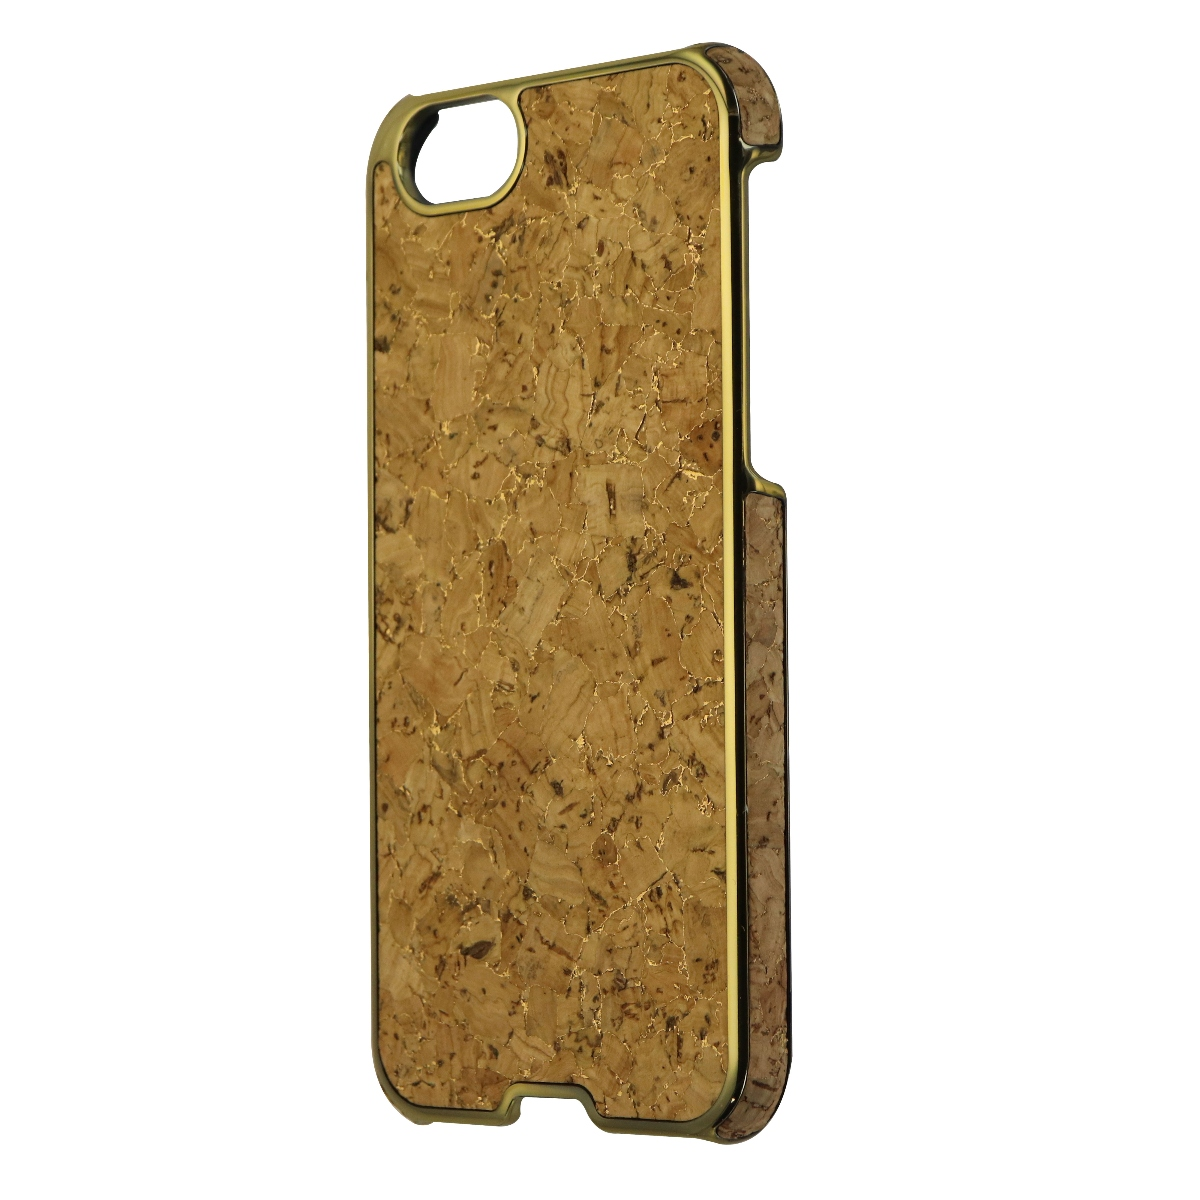 Agent 18 Inlay Series Cork Case Cover for Apple iPhone 6s and 6 - Cork / Gold